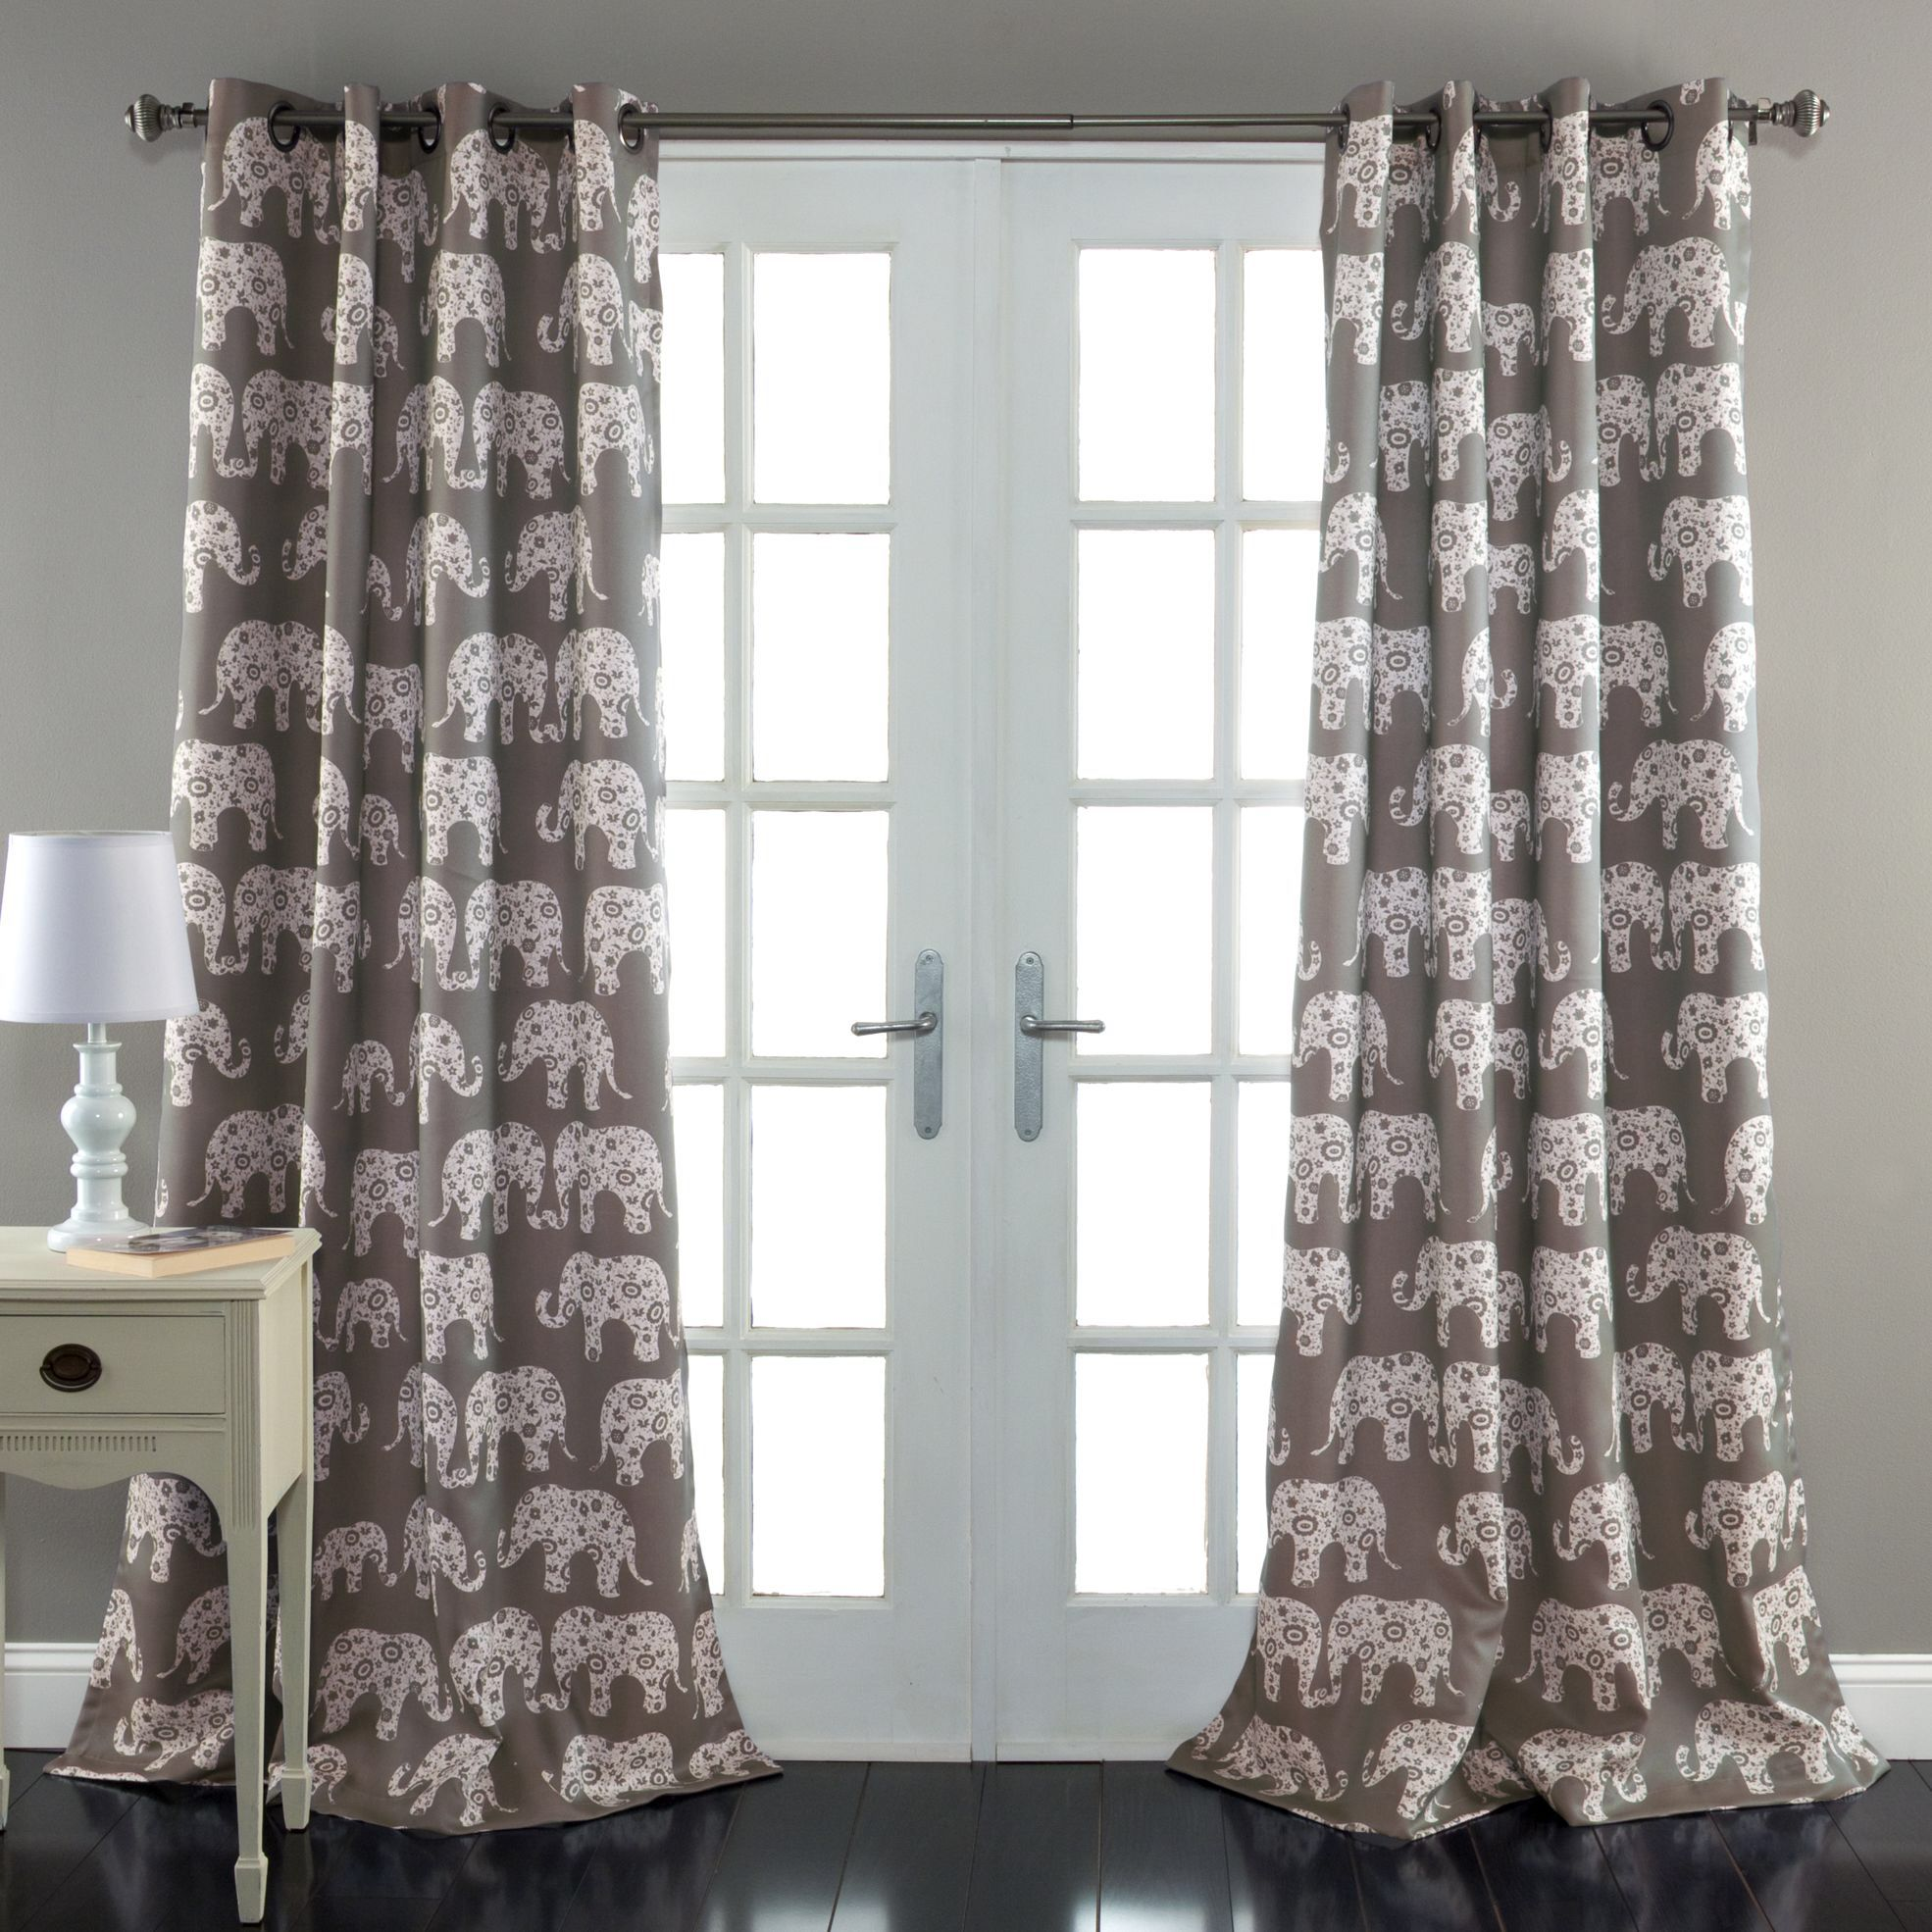 Office window coverings  elephant parade window curtain panel office  our house is a very